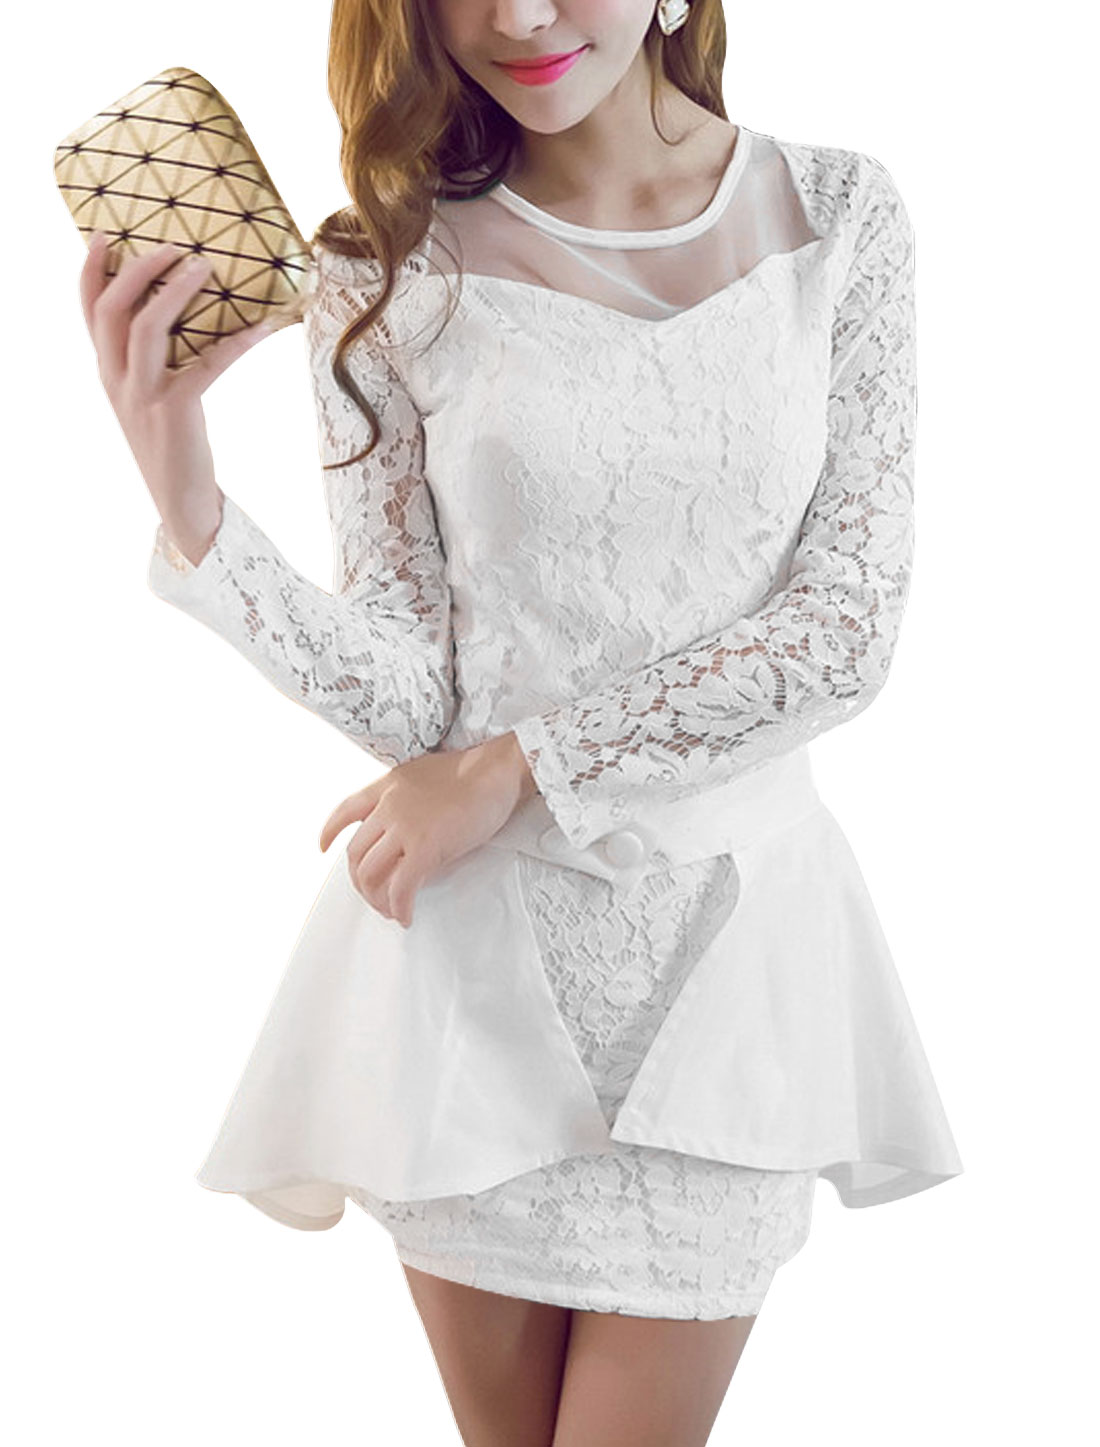 Women Long Sleeves Lace Sheath Dress w Detachable Overlay White M